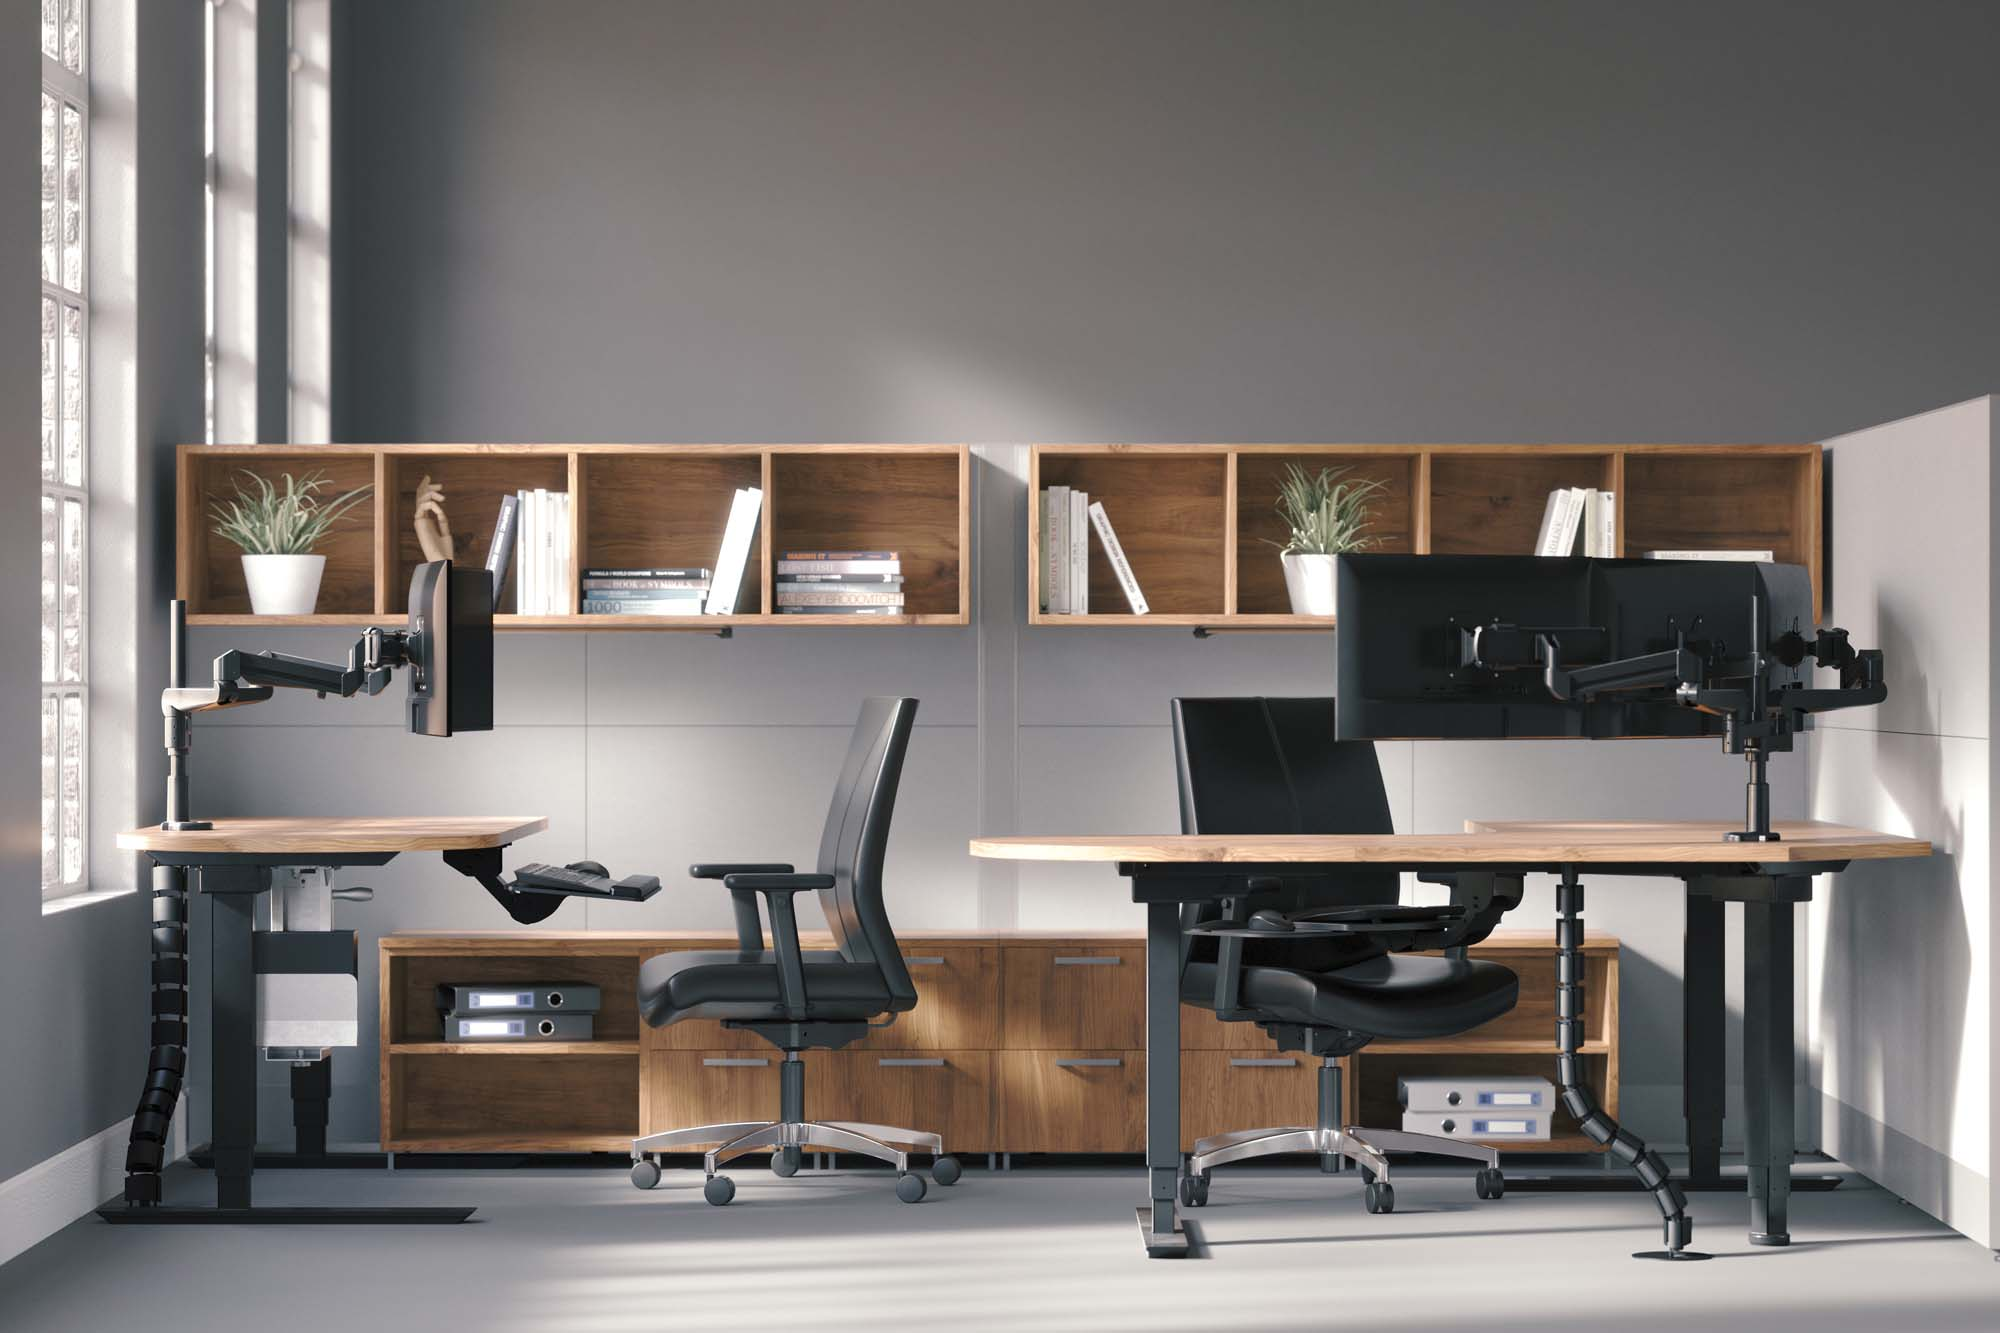 These ergonomic sit-stands get you up and moving so you can be healthier and more productive at work.